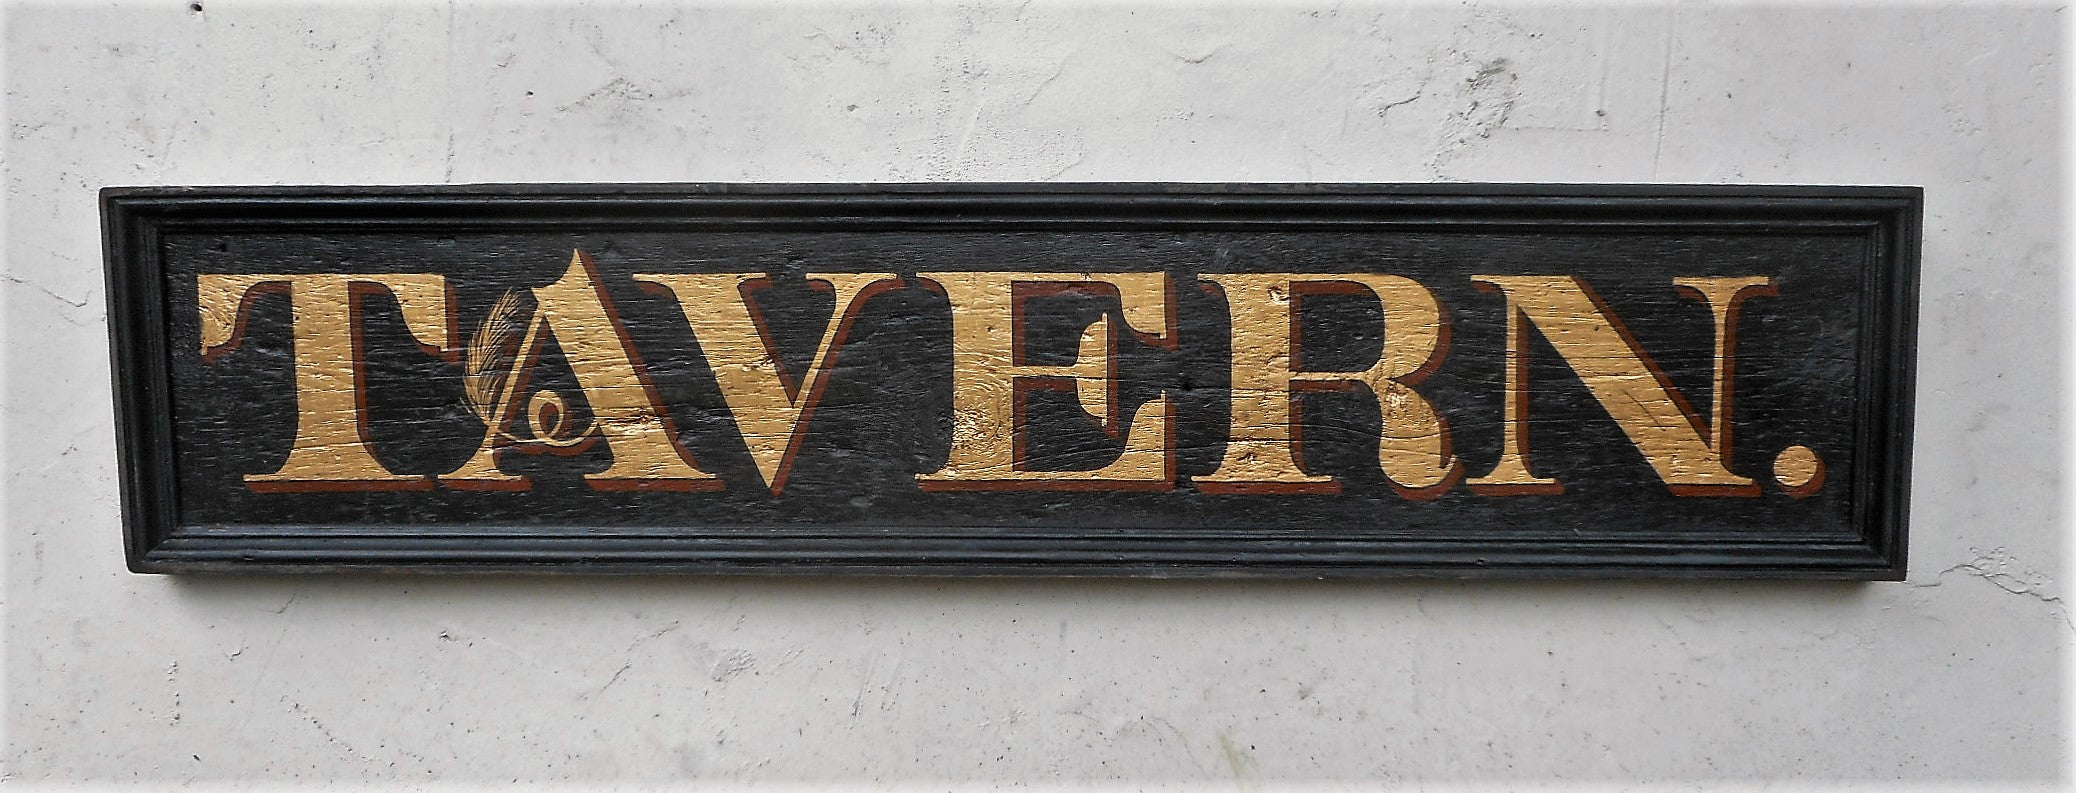 """Tavern""  sign in black"